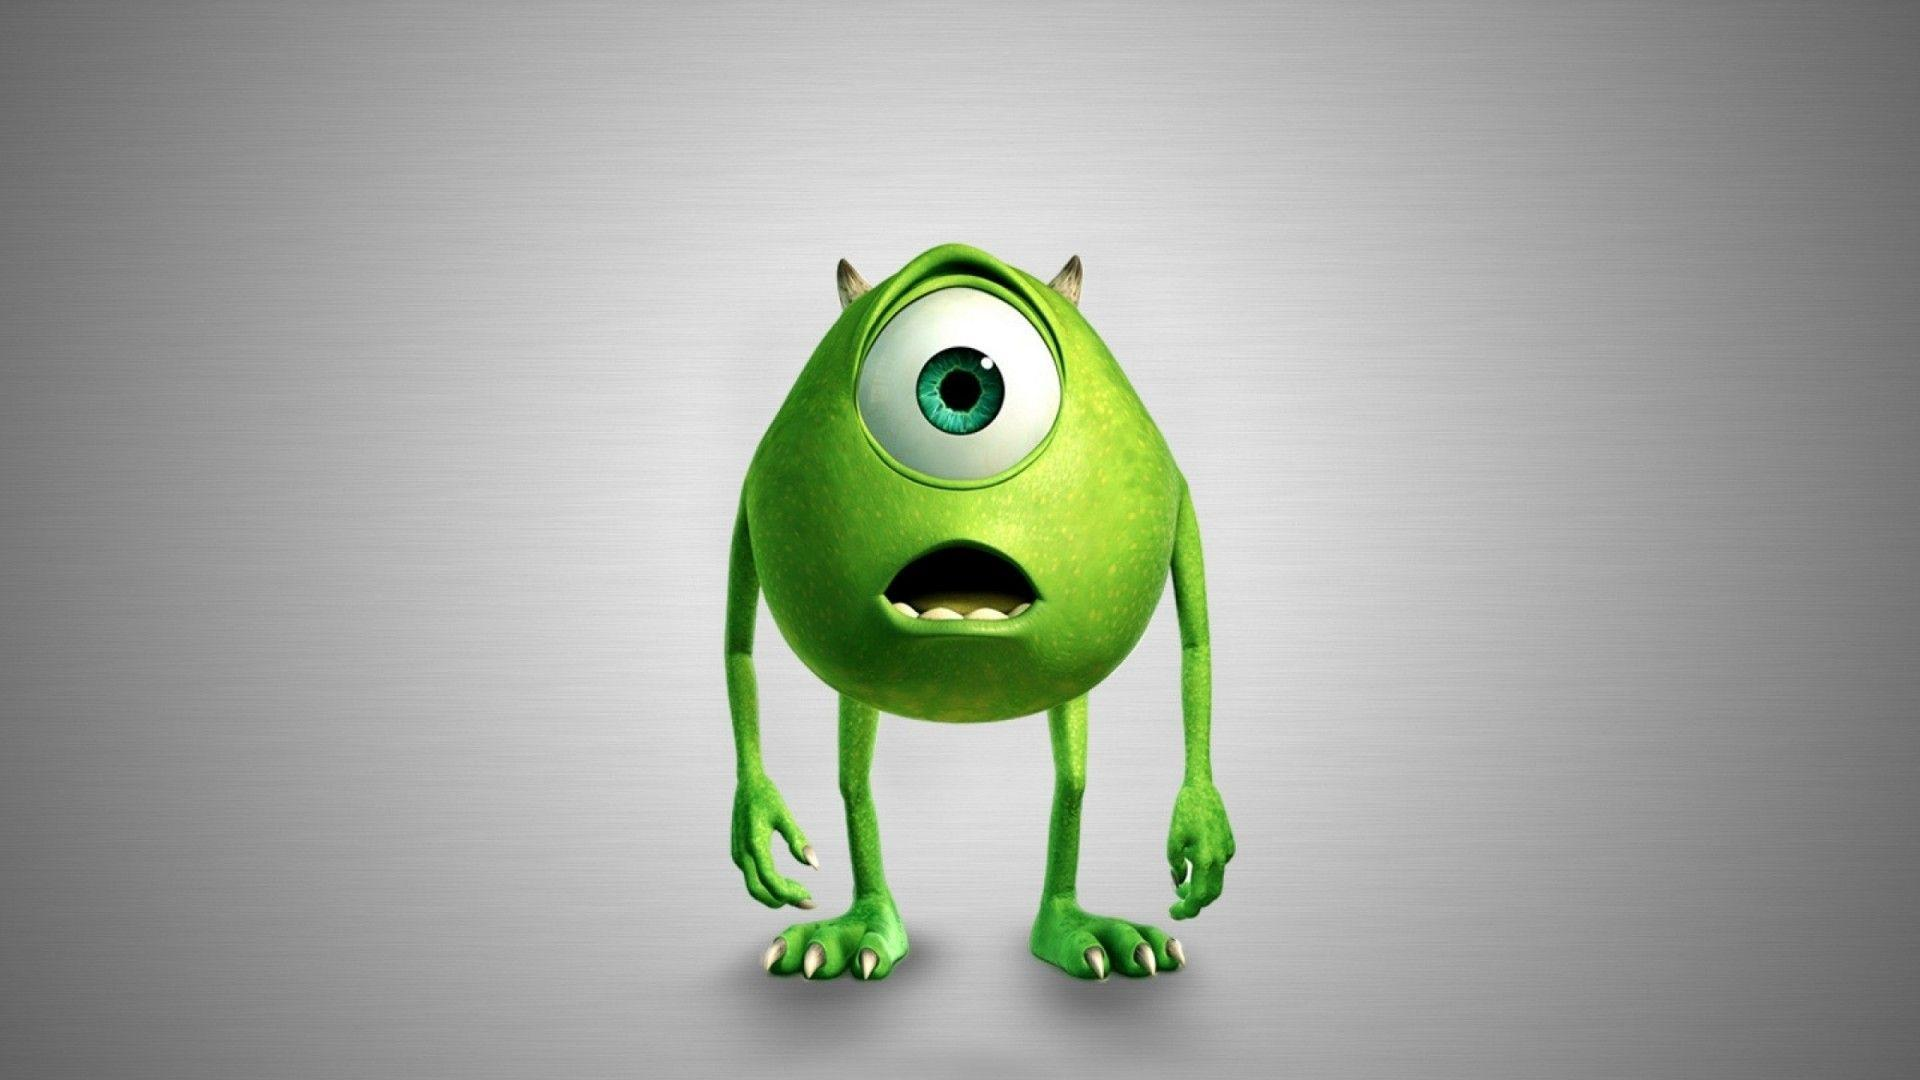 Mike Wazowski Wallpapers - Wallpaper Cave